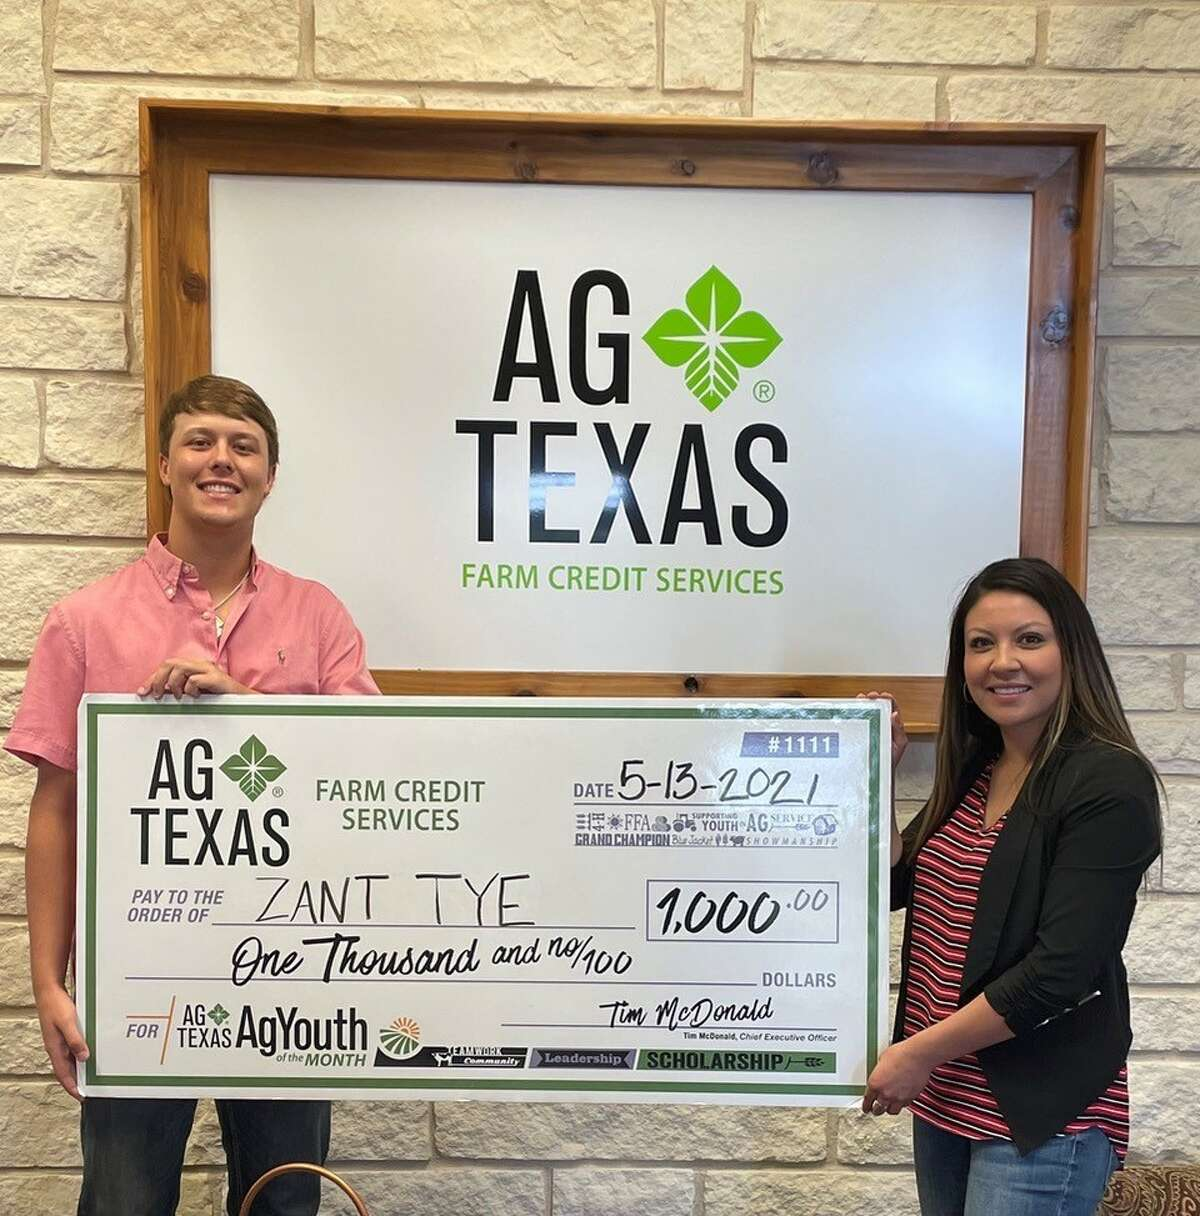 Here are the AgTexas AgYouth scholarship recipients for 2021. These students were recipients of $1,000 scholarships. Pictured: Zant Tye (Kress 4-H) and Sofia Zuniga (AgTexas Farm Credit Services)